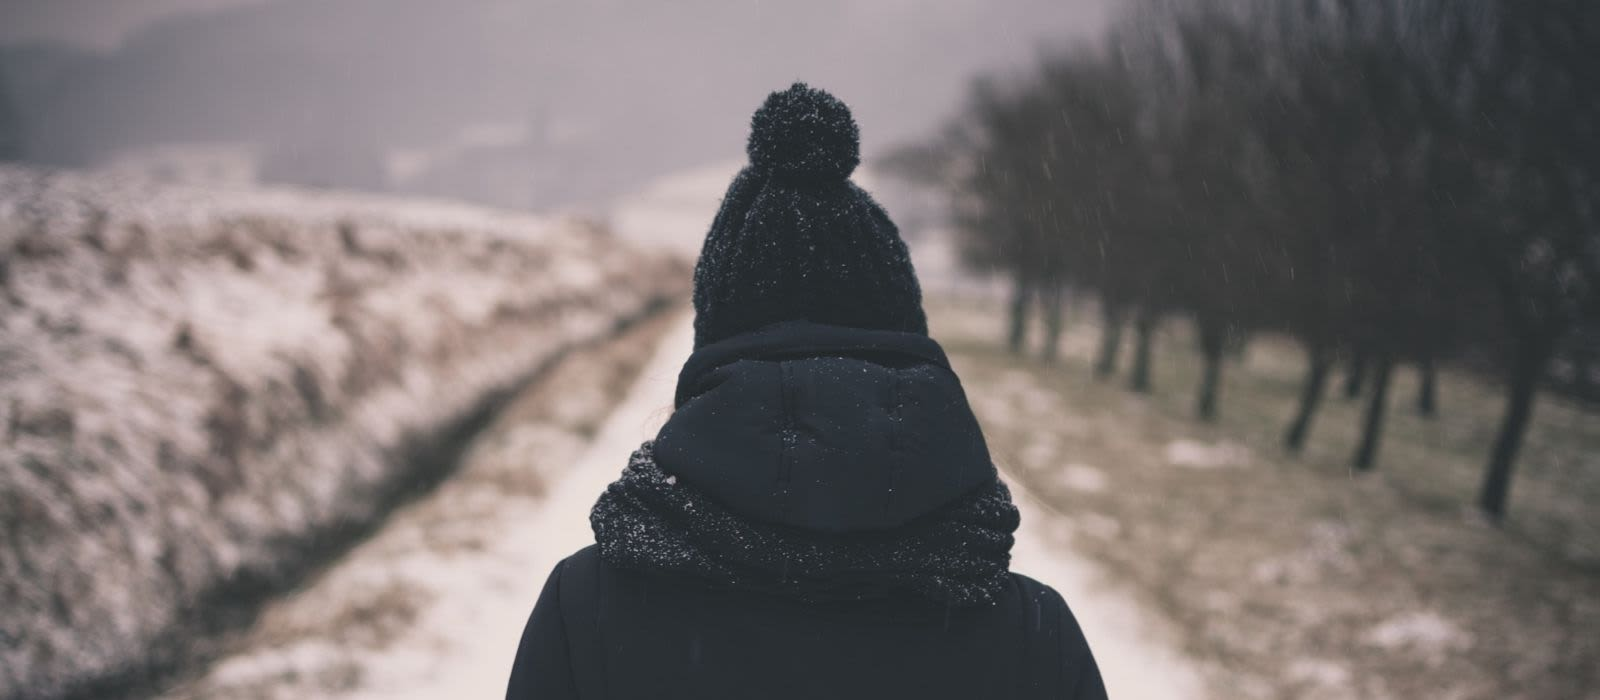 Facing a winter during a pandemic